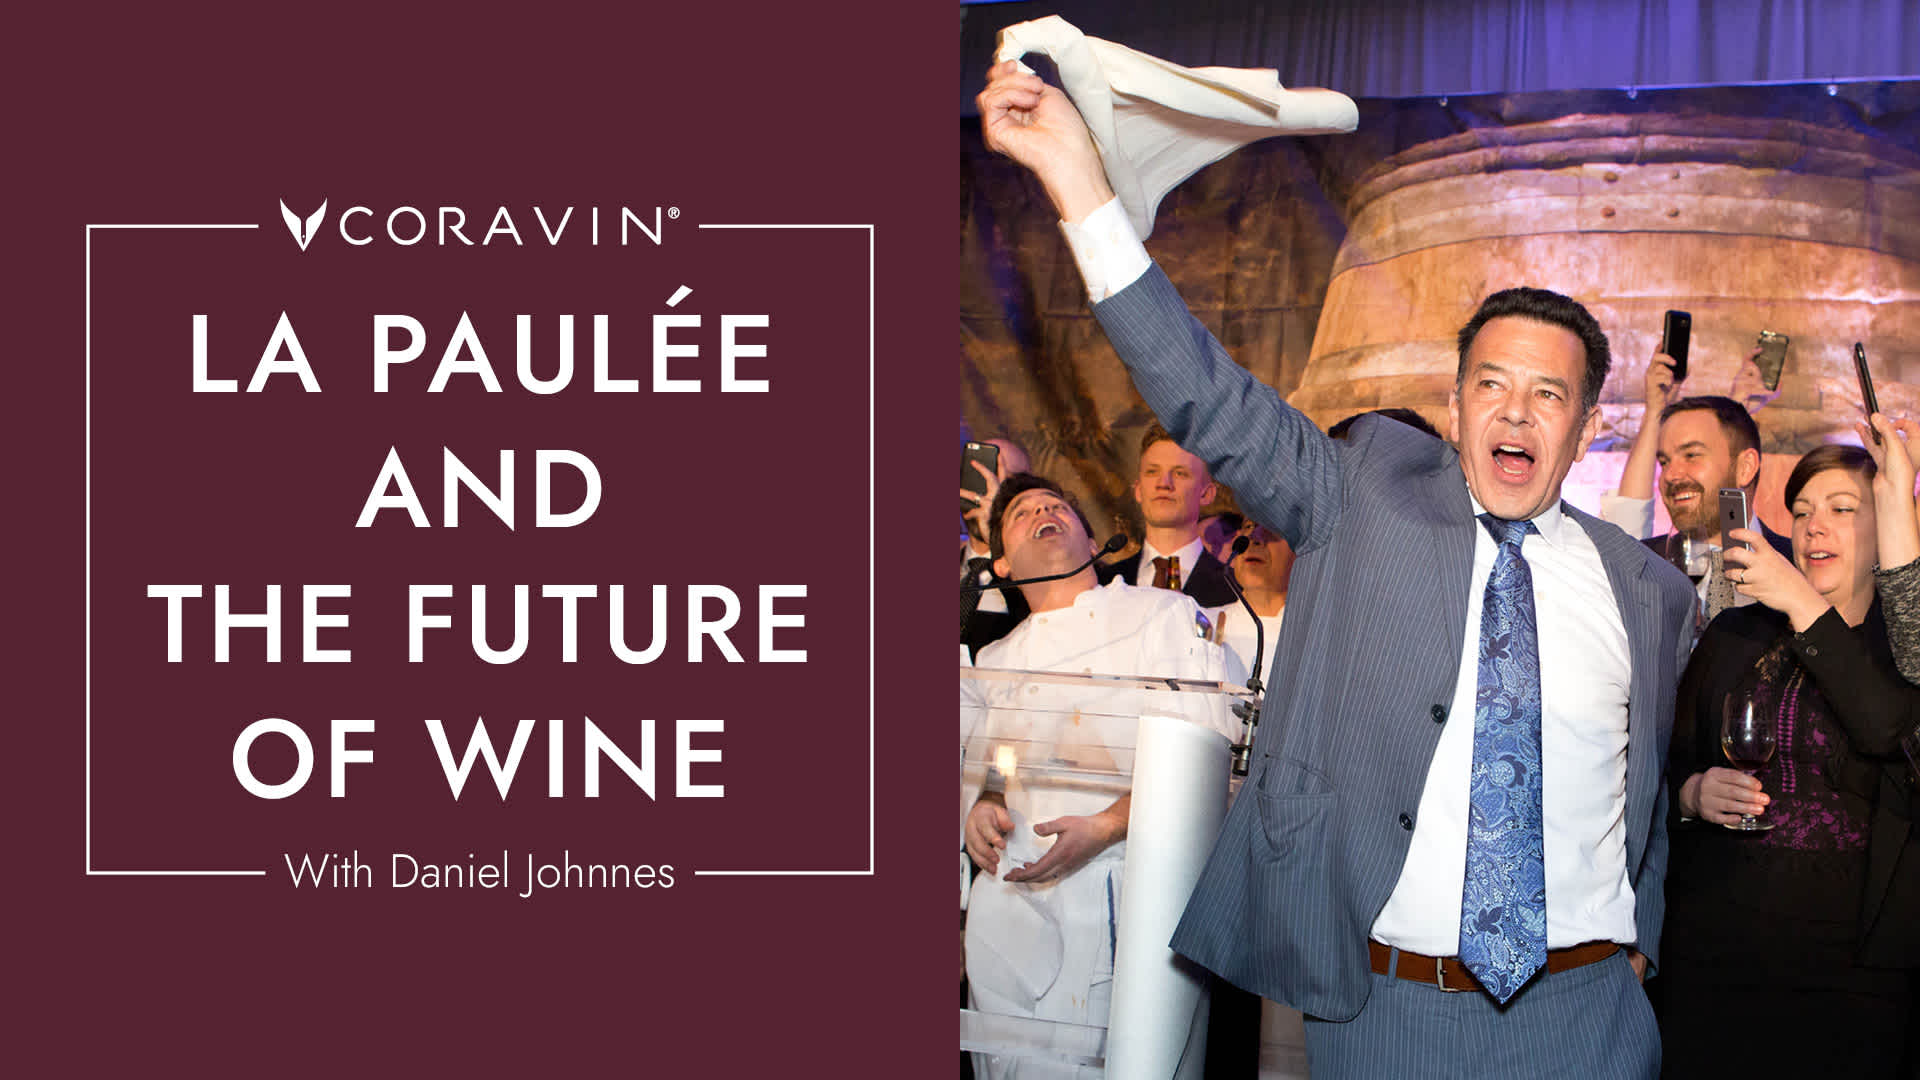 Danielle Johnnes future of wine and events